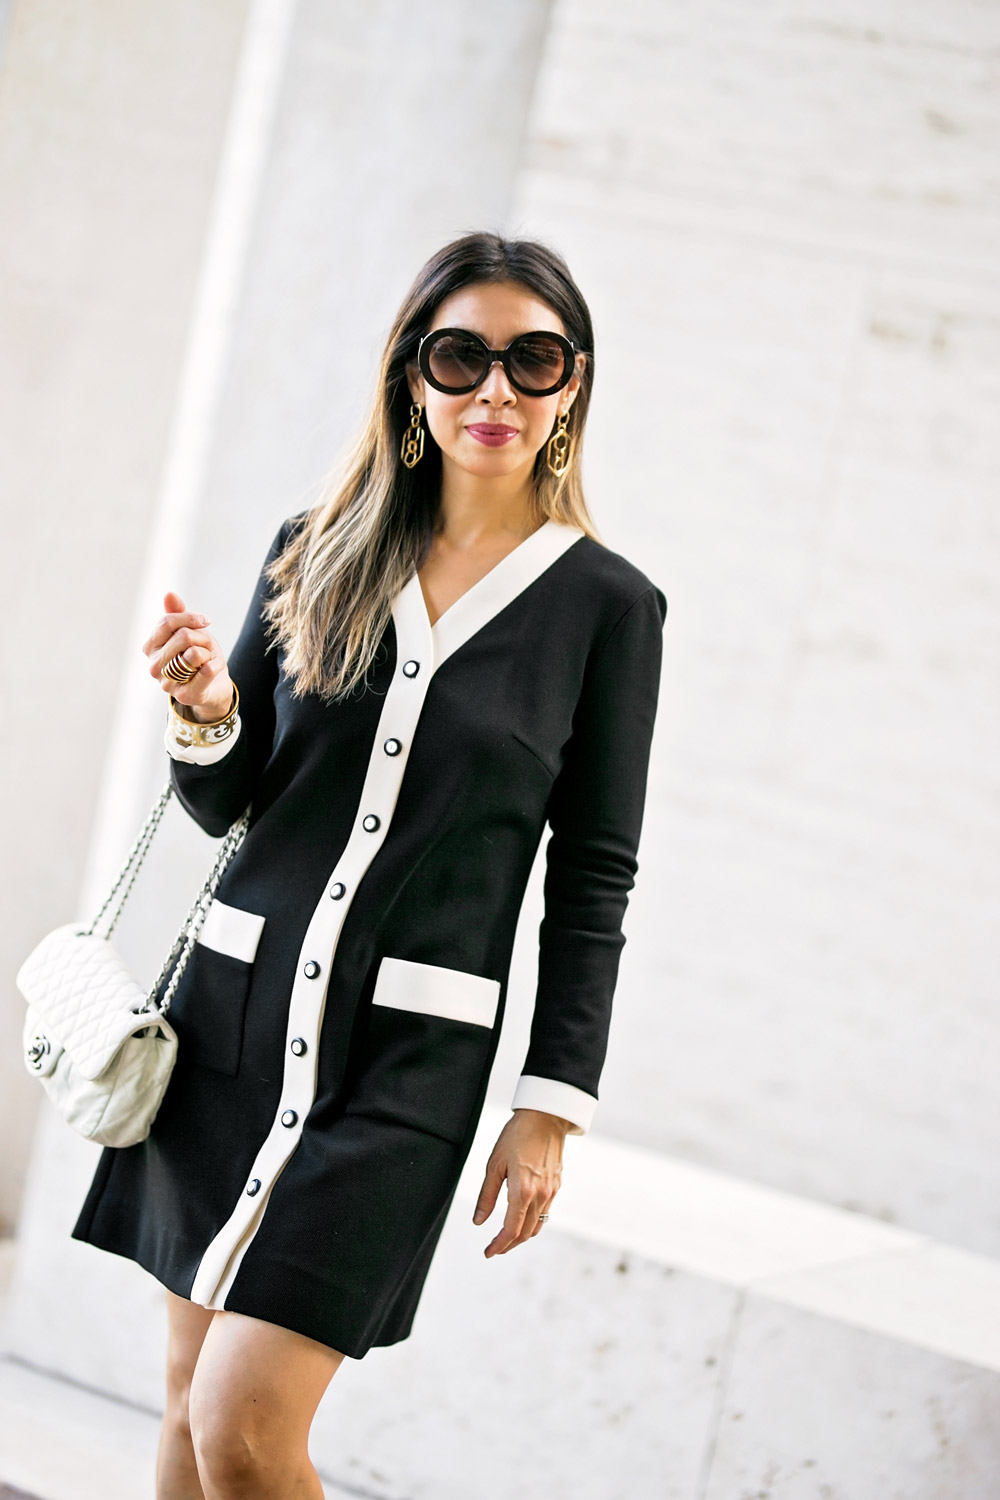 vintage black white contrast trim dress vita fede futuro ring prada round baroque sunglasses baublebar stephania hoop earrings chanel white flap bag